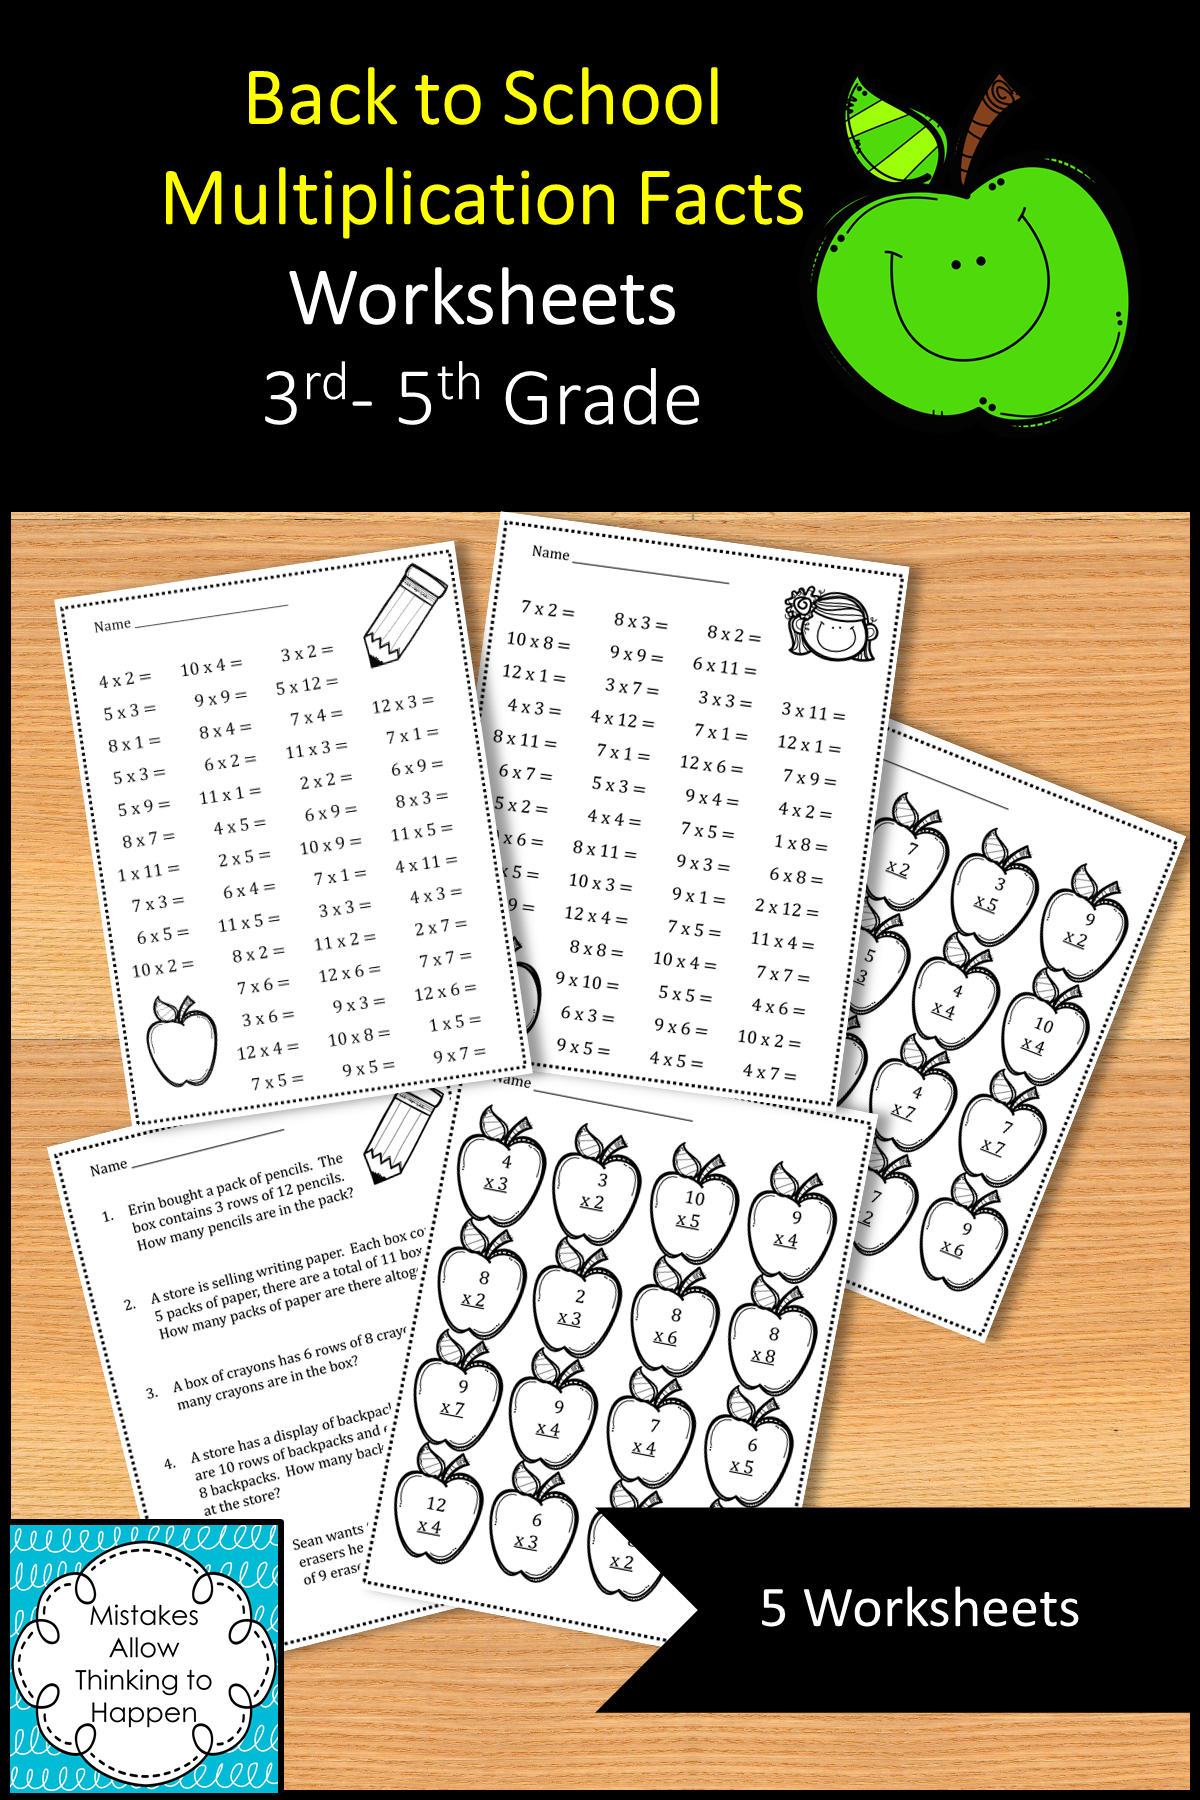 Back To School Multiplication Facts Worksheets